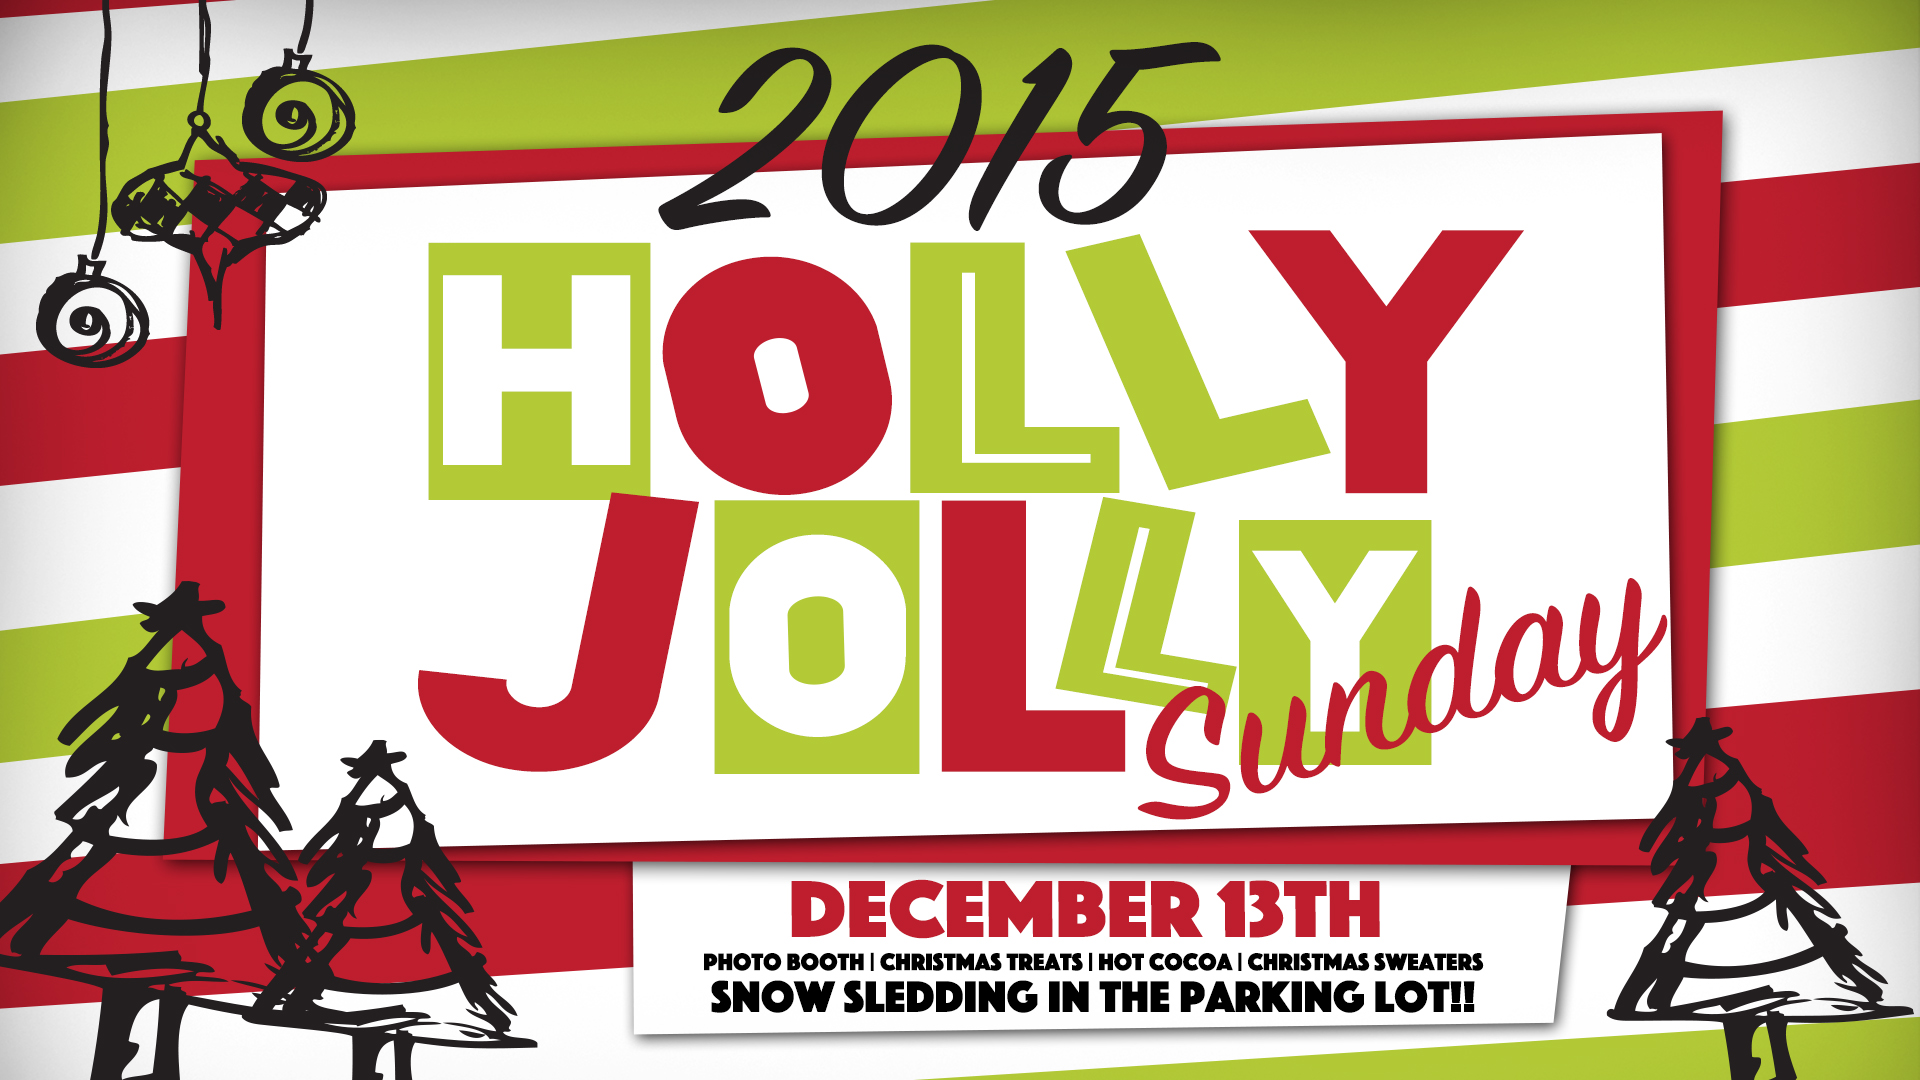 HOLLY JOLLY Sunday - Sunday, December 13  The most fun Sunday morning of the season is back! We will have Christmas treats in the lobby, the Ugly Christmas Sweater Photo Booth (step-up your game people!), and SNOW SLEDDING in the parking lot!! That's right we said SNOW SLEDDING. Invite every stinkin' person you know to join us for a fun morning at Crossbridge.